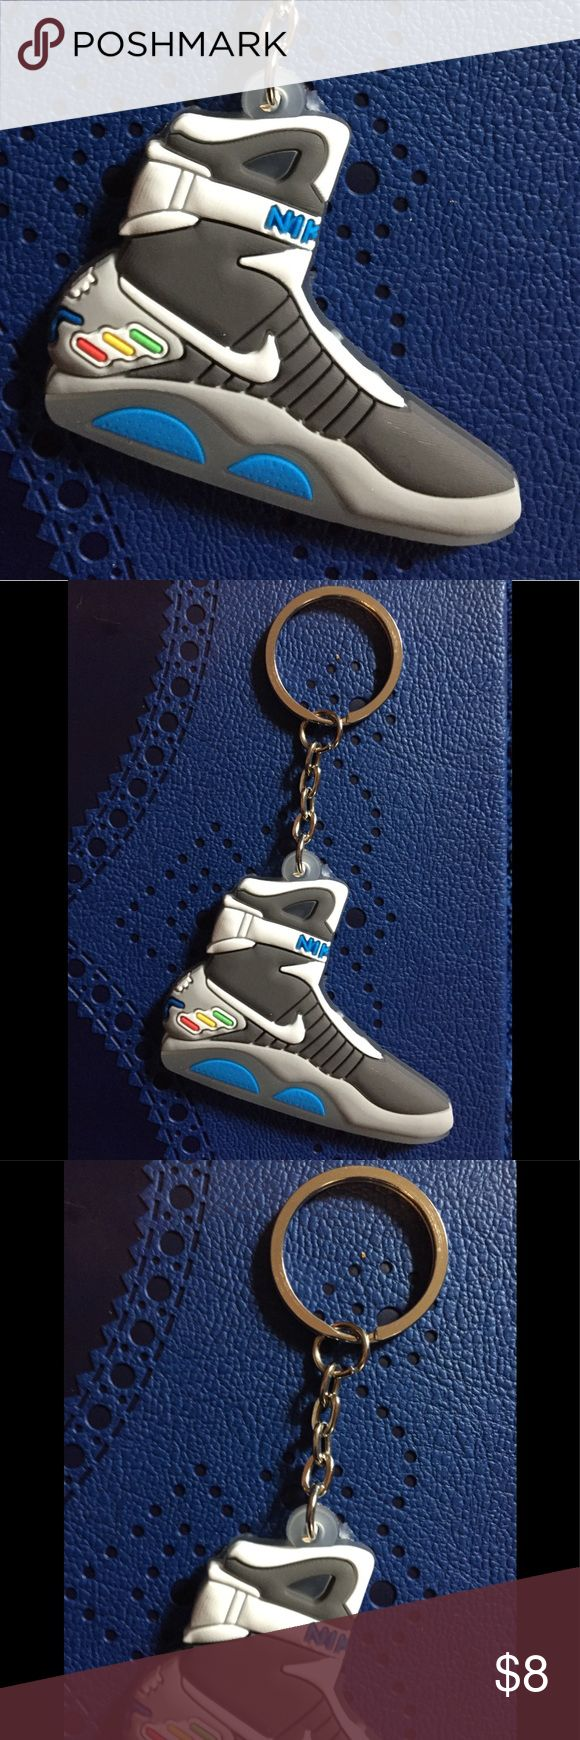 """Cult Of Personality Back To The Future II Keychain Cult Of Personality Back To The Future II Keychain  This Keychain Is Made Of PVC In The Design Of Marty's Shoes From Back To The Future II  Silver Tone Hardware  Measures 3.5"""" Long  x 2.5"""" Wide NWT  Bundle Two Or More Items From My Shop & Save 25% Automatically! Plus You'll Save A Bunch On Shipping! Emporiama's Cult Of Personality Accessories Key & Card Holders"""